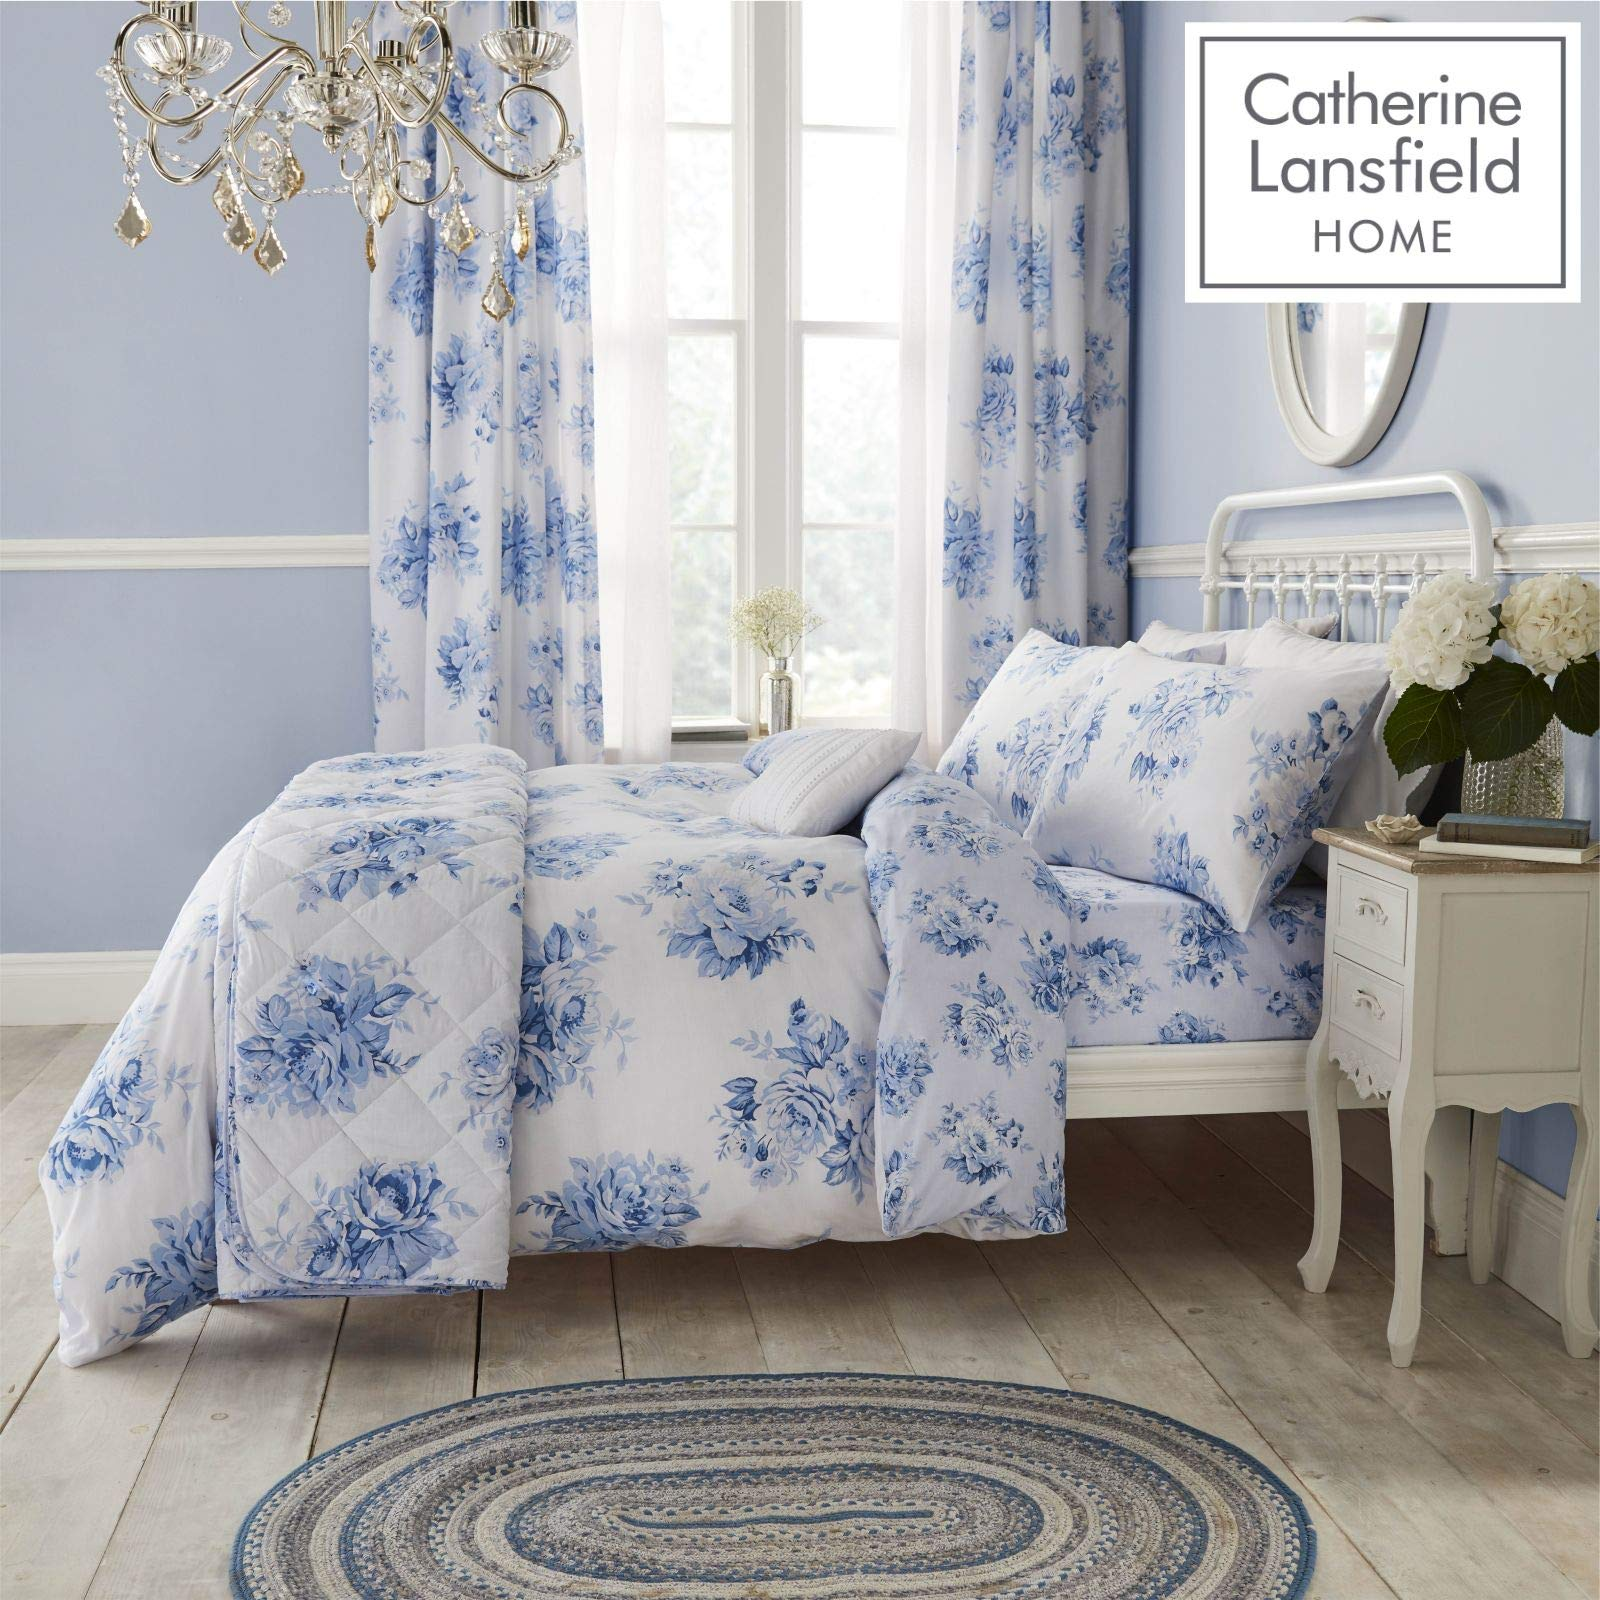 Tesco direct: Catherine Lansfield Home